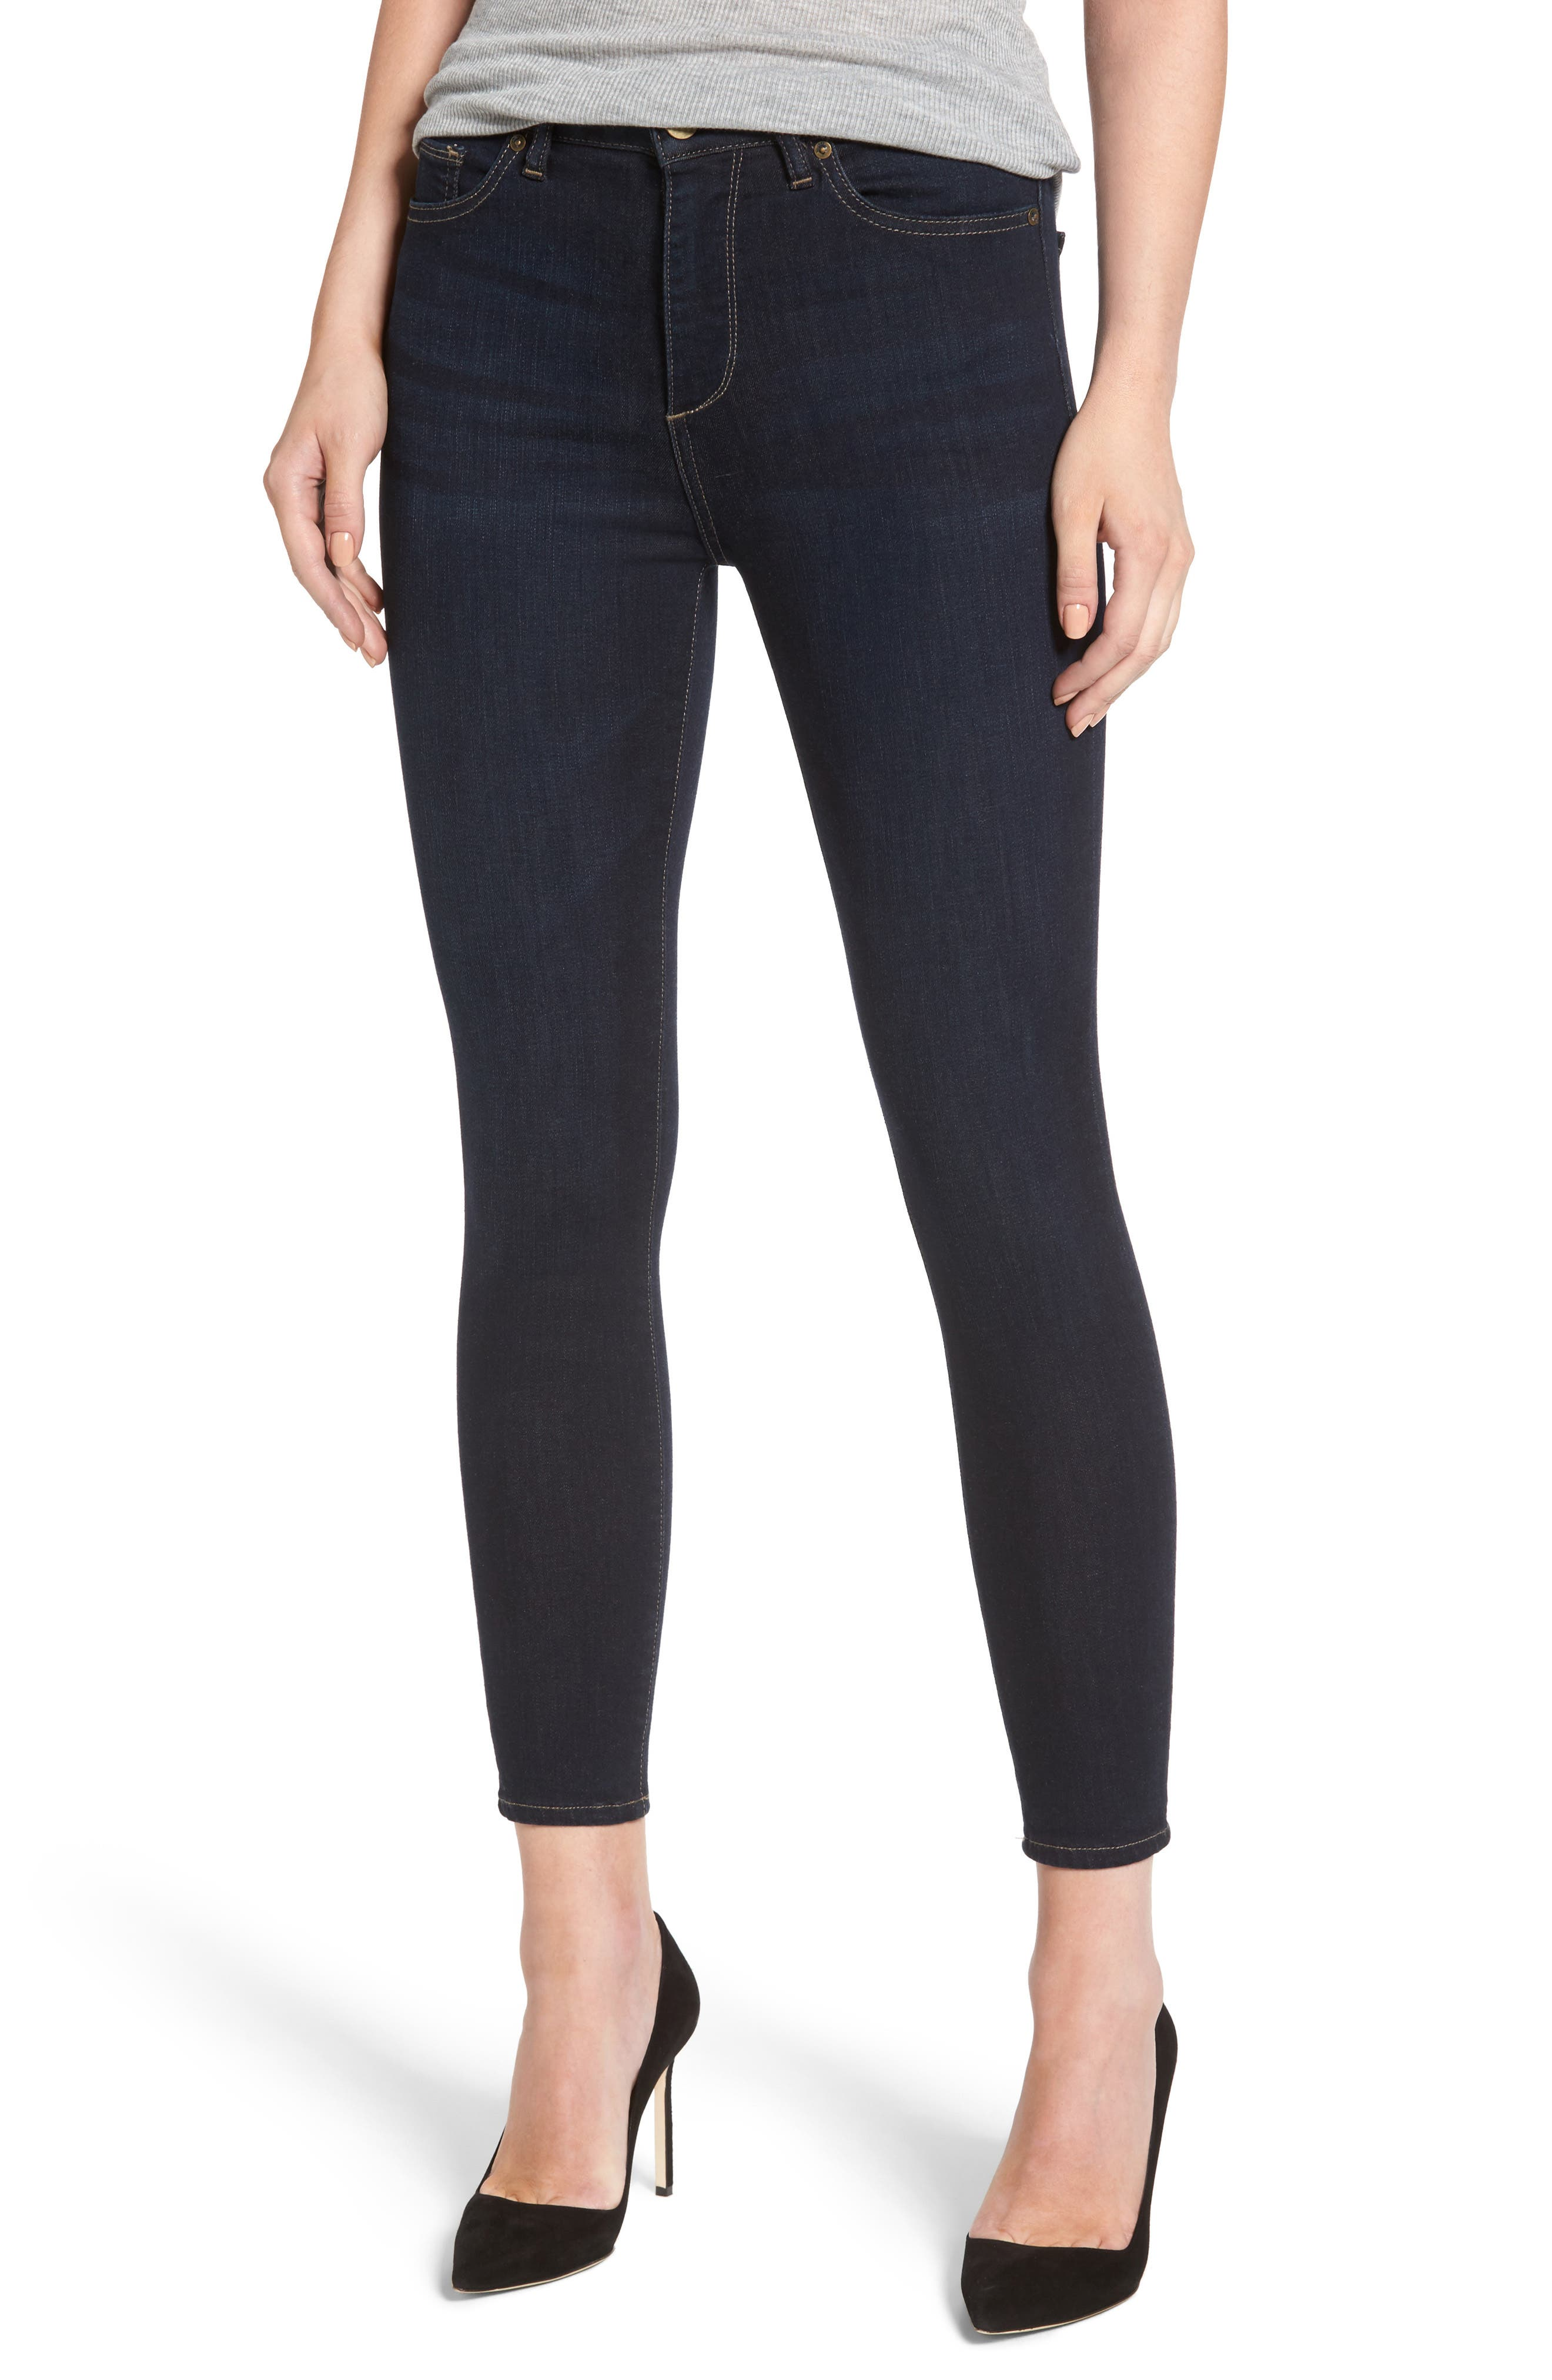 Chrissy High Waist Ankle Skinny Jeans,                             Main thumbnail 1, color,                             405